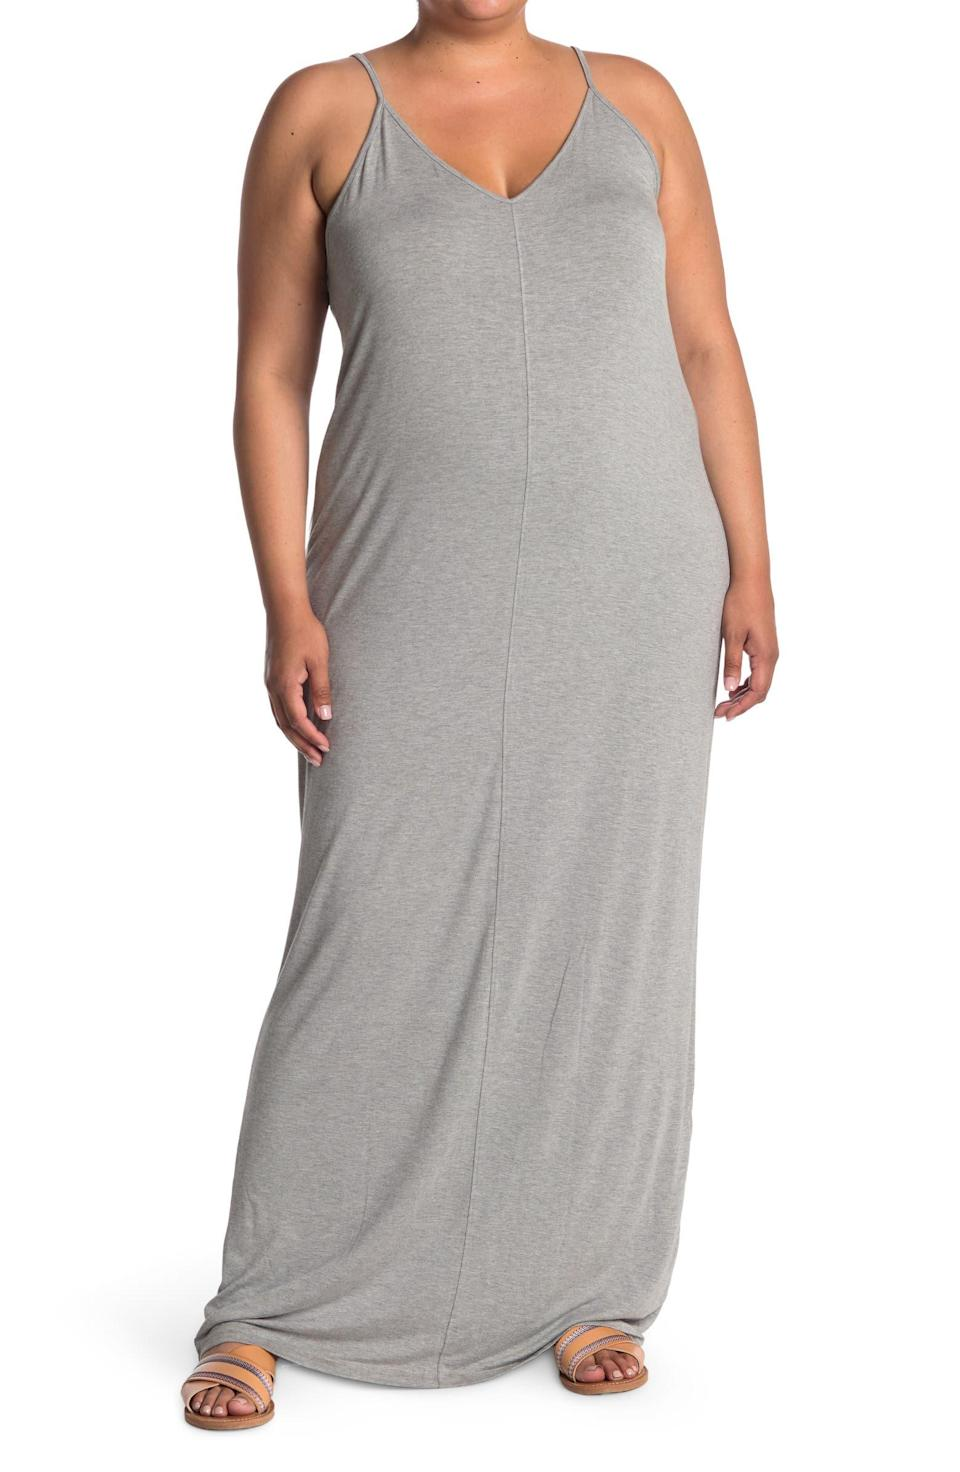 """<h2>Abound Sleeveless Maxi Dress</h2><br>A <a href=""""https://www.refinery29.com/en-us/best-long-sundresses"""" rel=""""nofollow noopener"""" target=""""_blank"""" data-ylk=""""slk:long summer dress"""" class=""""link rapid-noclick-resp"""">long summer dress</a> for long summer days is a warm-weather wardrobe must, and according to over 100 cyber shoppers, this particular style is guaranteed to please... and it won't cost you more than $20. <br><br><strong>The Hype:</strong> 4.3 out of 5 stars; 116 reviews on <a href=""""https://www.nordstromrack.com/s/abound-v-neck-sleeveless-maxi-dress-plus-size/6032655"""" rel=""""nofollow noopener"""" target=""""_blank"""" data-ylk=""""slk:NordstromRack.com"""" class=""""link rapid-noclick-resp"""">NordstromRack.com</a><br><br><strong>What They're Saying:</strong> """"Finally something true to size! To everyone that is curvy and heavy chested, this dress fits great!! It's true to size and is thin material great for spring and summertime.. It is long so know that!! I do can't wait to wear it this summer!!"""" — Csmooches, NordstromRack.com reviewer<br><br><strong>Abound</strong> V-Neck Sleeveless Maxi Dress, $, available at <a href=""""https://go.skimresources.com/?id=30283X879131&url=https%3A%2F%2Fwww.nordstromrack.com%2Fs%2Fabound-v-neck-sleeveless-maxi-dress-plus-size%2F6032655"""" rel=""""nofollow noopener"""" target=""""_blank"""" data-ylk=""""slk:Nordstrom Rack"""" class=""""link rapid-noclick-resp"""">Nordstrom Rack</a>"""